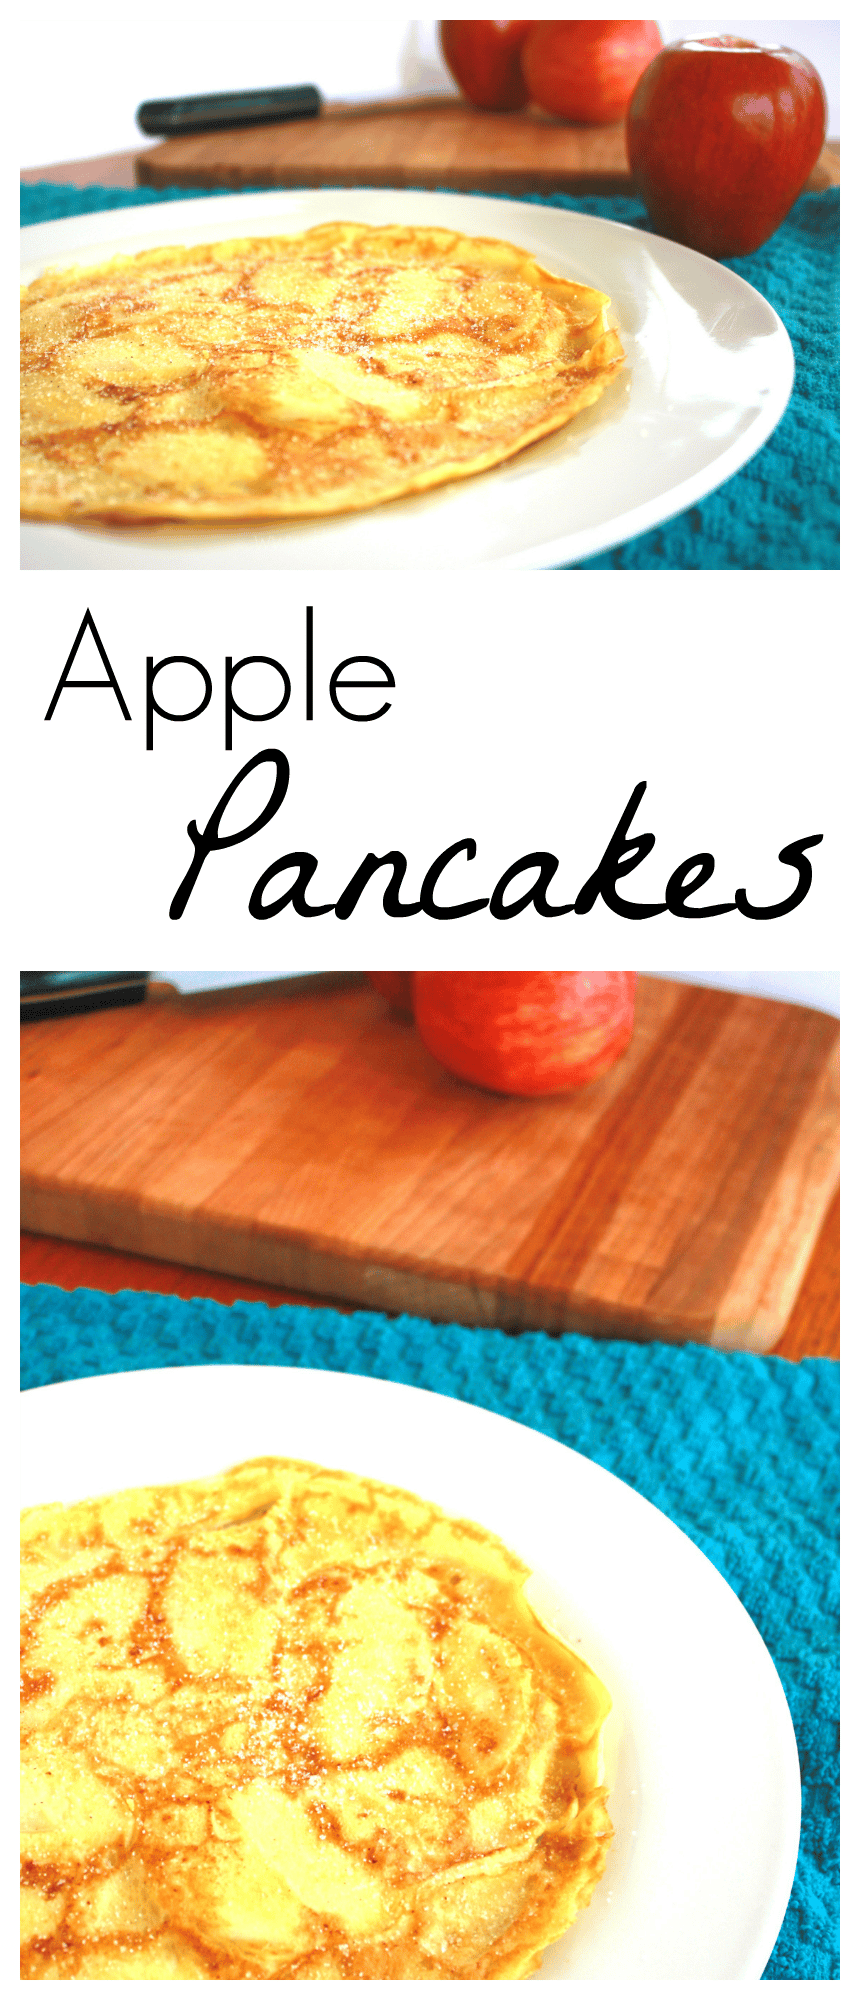 This recipe is a family favorite- my Great Grandma's Apple Pancakes are such an amazing, subtly-sweet breakfast option. You cannot eat just one!